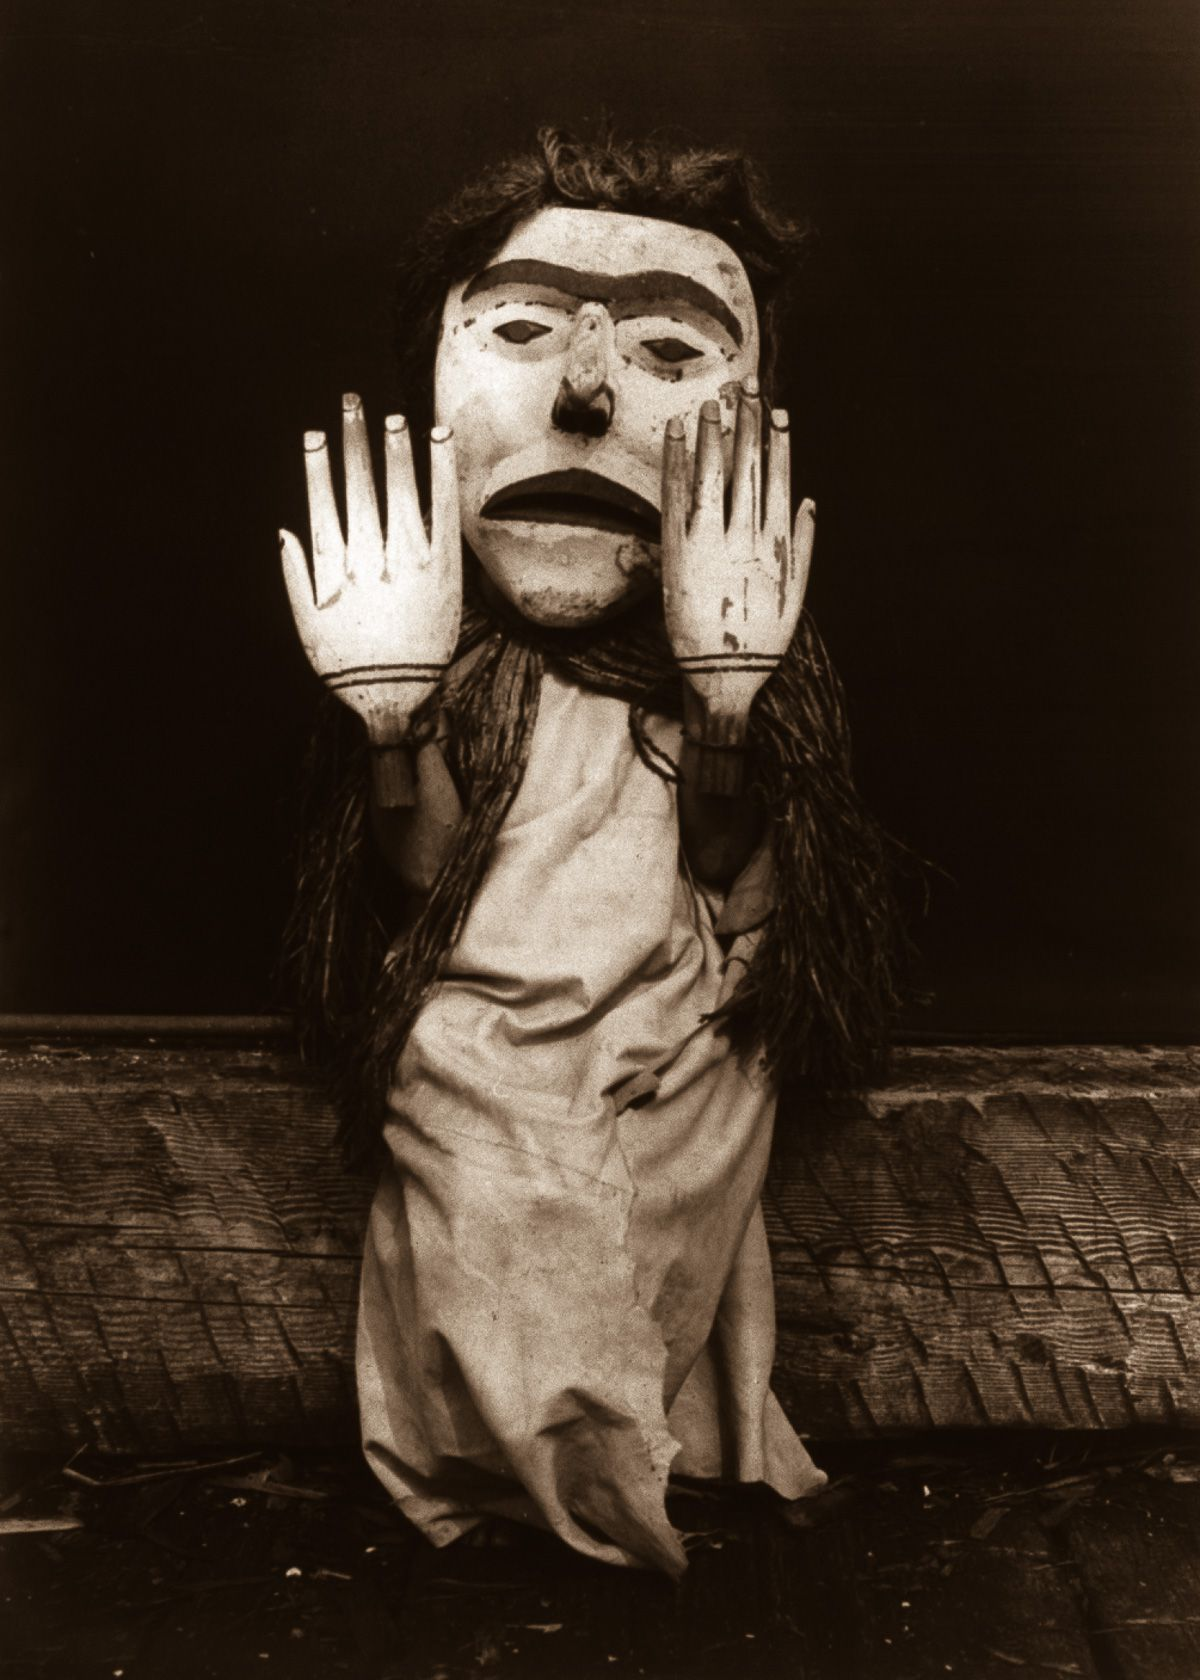 """A Kwakiutl person dressed as a forest spirit, Nuhlimkilaka, (""""bringer of confusion""""),  1914.  ©EDWARD S. CURTIS/LIBRARY OF CONGRESS"""